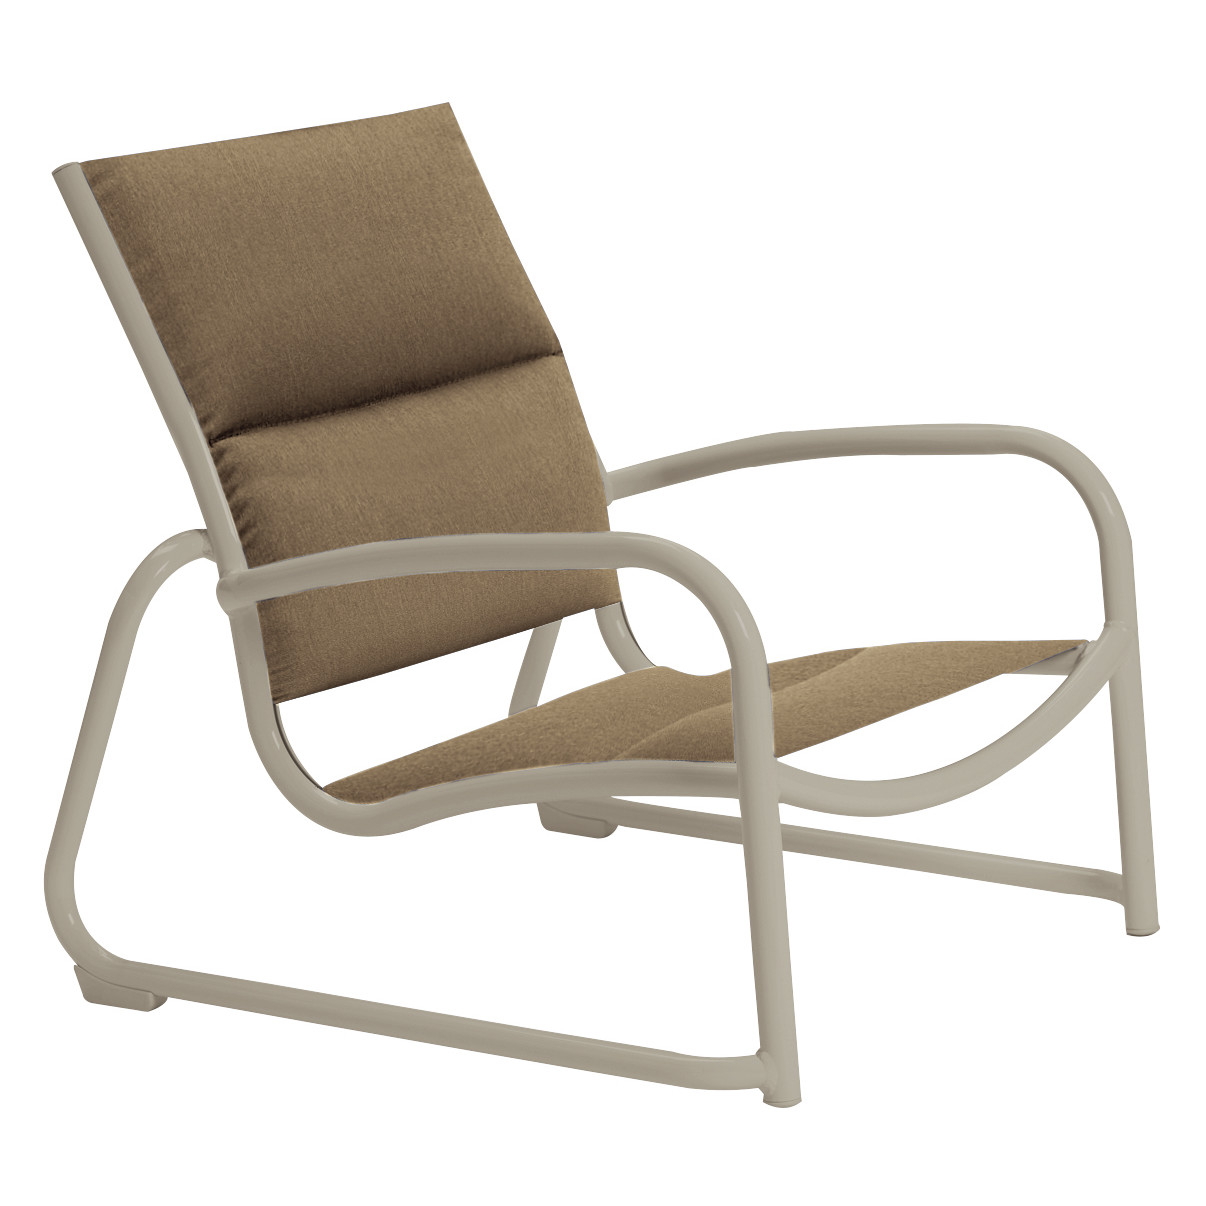 Manufacturers of Patio Furniture | Tropitone | Outdoor Furniture Wholesale Suppliers